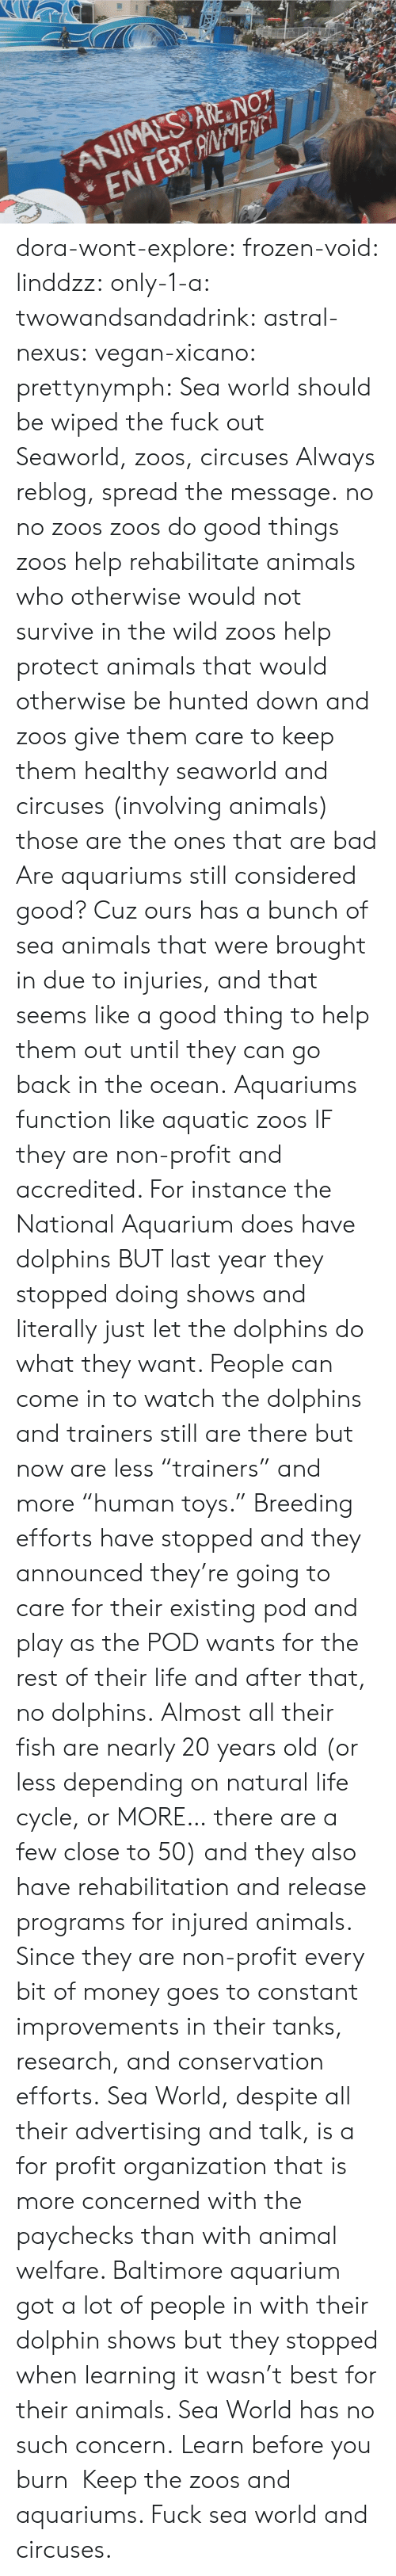 "Dolphin: ANIMALS ARE NOT  ENTERTANENTi dora-wont-explore:   frozen-void:  linddzz:  only-1-a:  twowandsandadrink:  astral-nexus:  vegan-xicano:  prettynymph:  Sea world should be wiped the fuck out  Seaworld, zoos, circuses  Always reblog, spread the message.  no no zoos zoos do good things zoos help rehabilitate animals who otherwise would not survive in the wild zoos help protect animals that would otherwise be hunted down and zoos give them care to keep them healthy seaworld and circuses (involving animals) those are the ones that are bad  Are aquariums still considered good? Cuz ours has a bunch of sea animals that were brought in due to injuries, and that seems like a good thing to help them out until they can go back in the ocean.  Aquariums function like aquatic zoos IF they are non-profit and accredited. For instance the National Aquarium does have dolphins BUT last year they stopped doing shows and literally just let the dolphins do what they want. People can come in to watch the dolphins and trainers still are there but now are less ""trainers"" and more ""human toys."" Breeding efforts have stopped and they announced they're going to care for their existing pod and play as the POD wants for the rest of their life and after that, no dolphins. Almost all their fish are nearly 20 years old (or less depending on natural life cycle, or MORE… there are a few close to 50) and they also have rehabilitation and release programs for injured animals. Since they are non-profit every bit of money goes to constant improvements in their tanks, research, and conservation efforts. Sea World, despite all their advertising and talk, is a for profit organization that is more concerned with the paychecks than with animal welfare. Baltimore aquarium got a lot of people in with their dolphin shows but they stopped when learning it wasn't best for their animals. Sea World has no such concern.  Learn before you burn   Keep the zoos and aquariums. Fuck sea world and circuses."